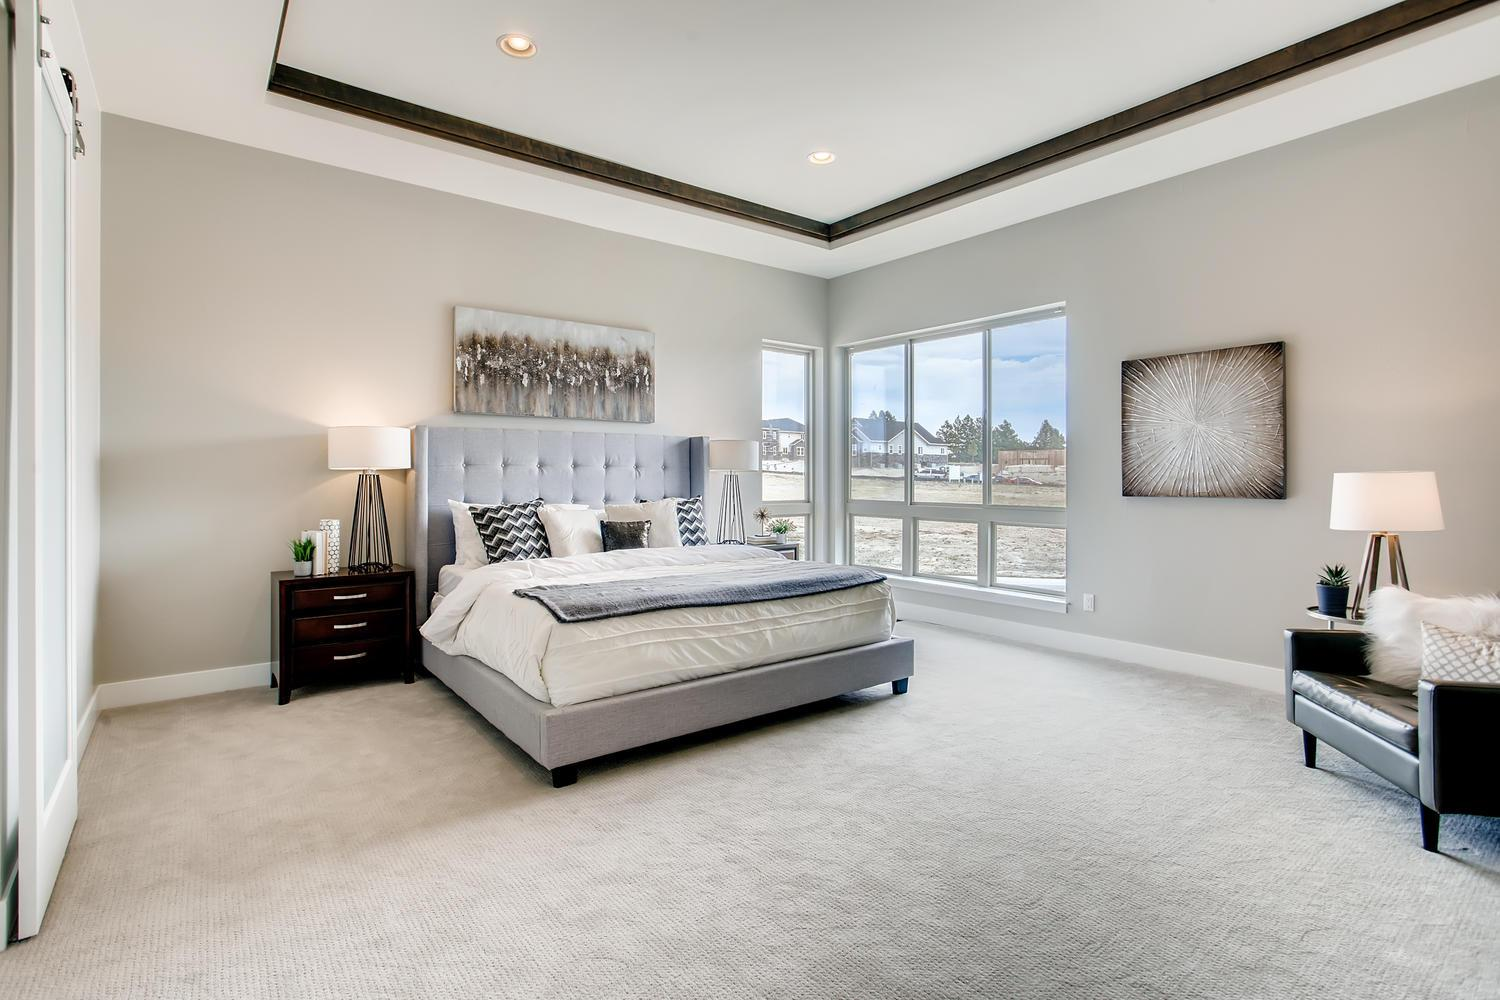 Bedroom featured in the Residence Two By Berkeley Homes in Denver, CO